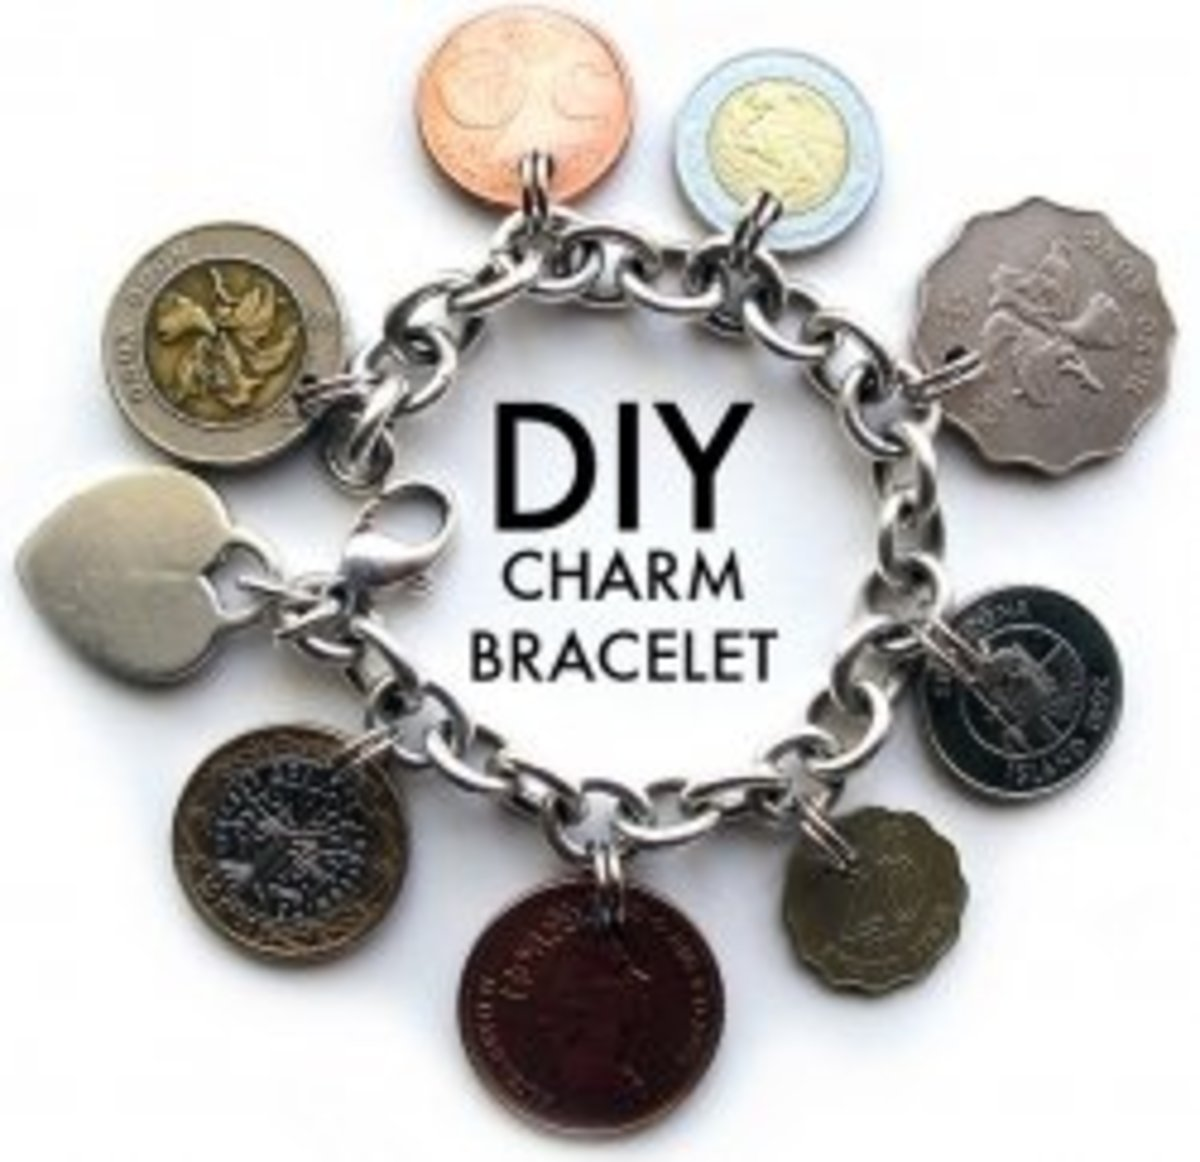 ★ How To Make Your Own Jewelry | TUTORIALS, TIPS & IDEAS ★